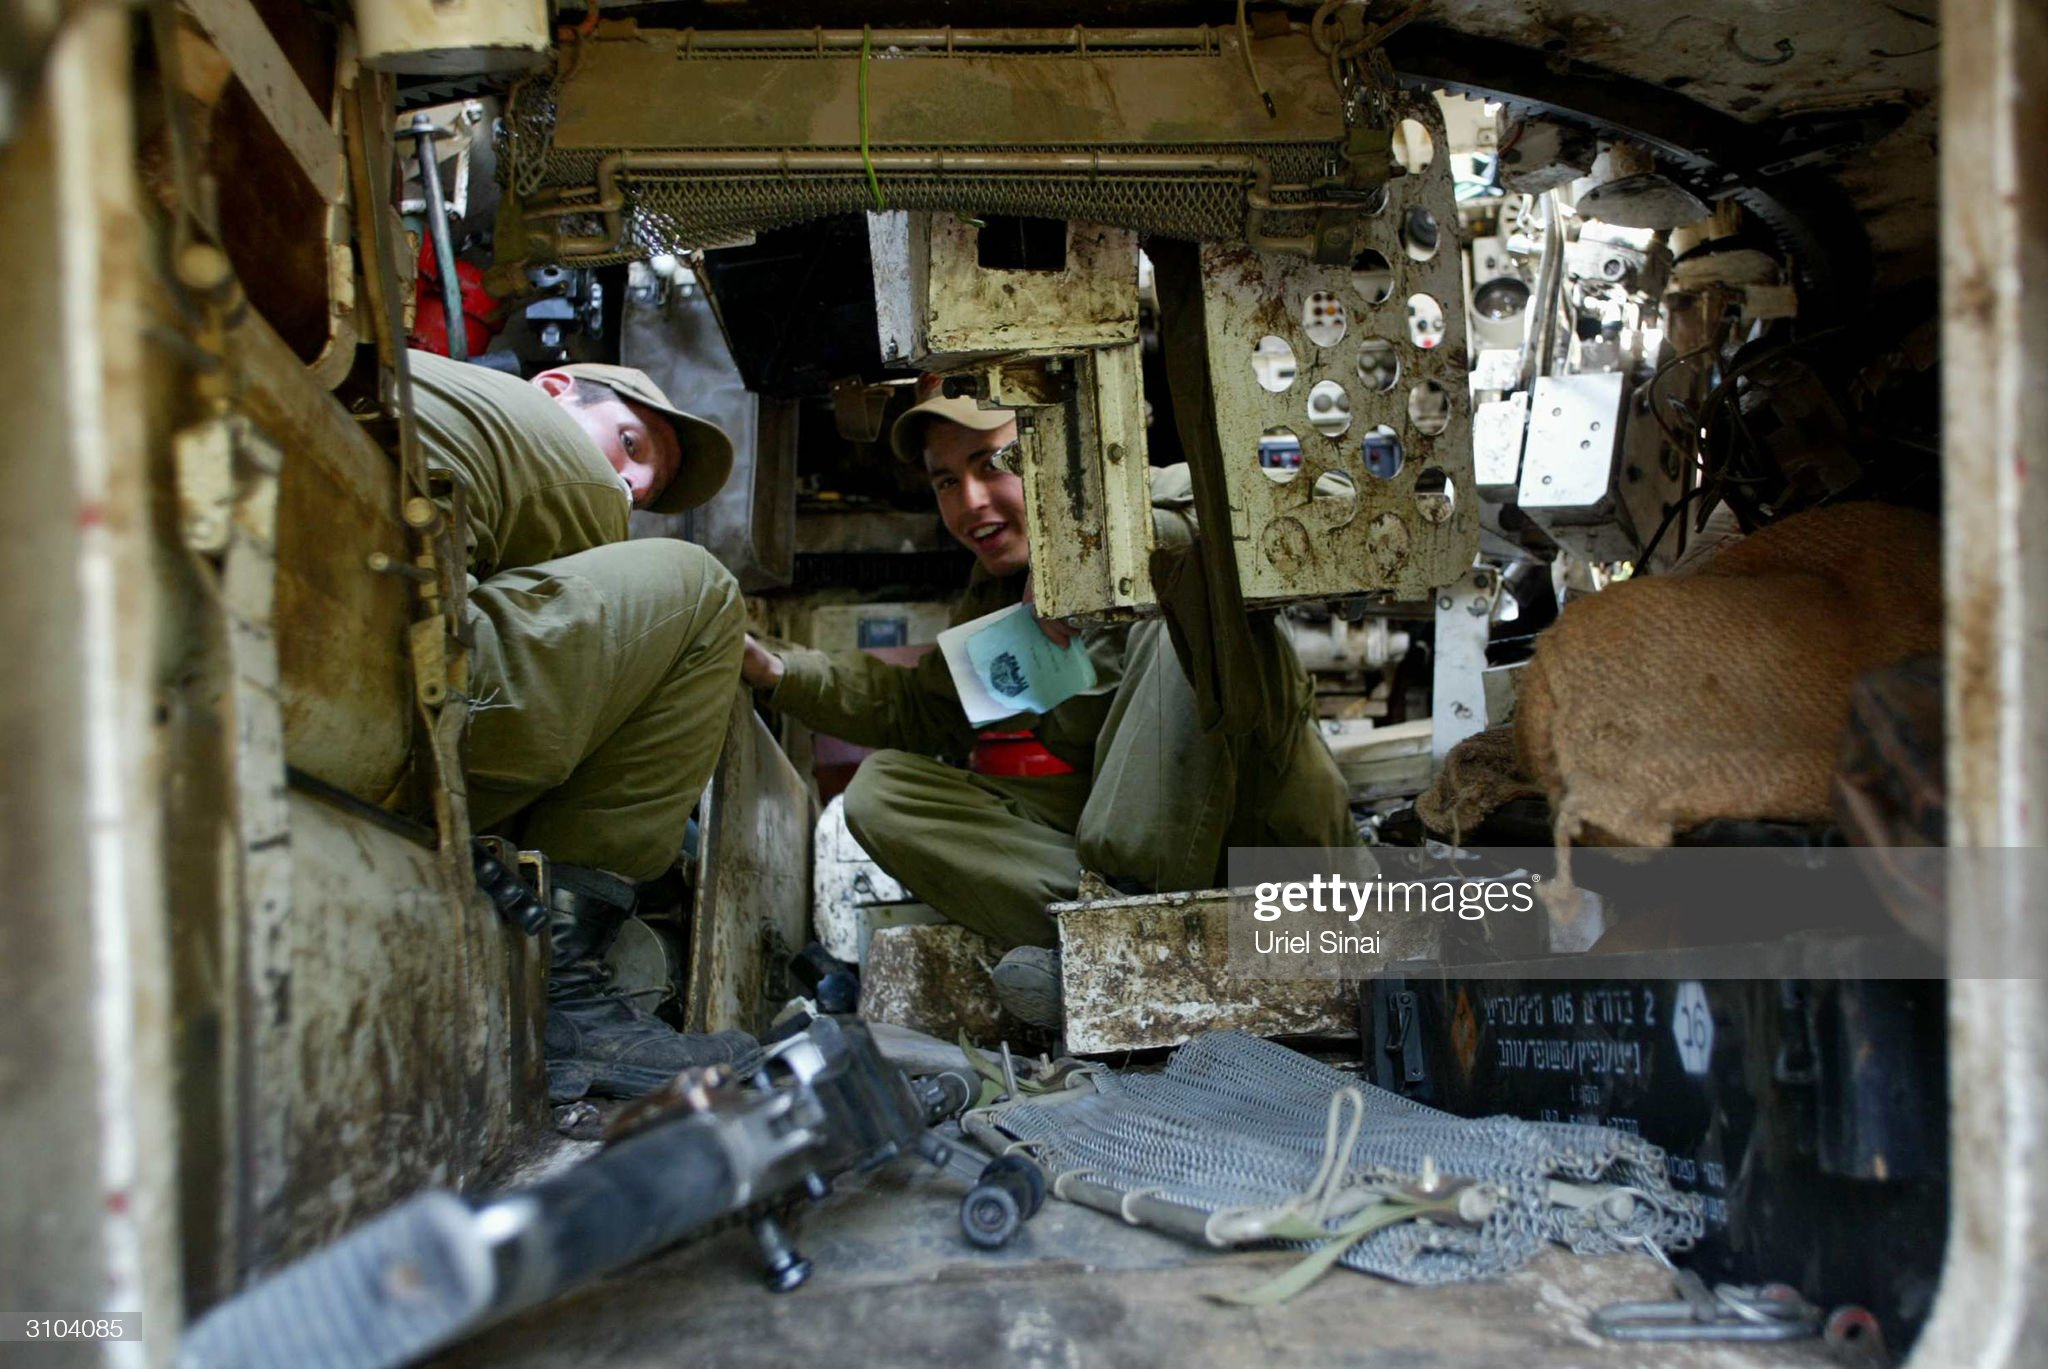 https://media.gettyimages.com/photos/israeli-soldiers-sit-inside-a-merkeva-mark-ii-tank-as-their-unit-17-picture-id3104085?s=2048x2048